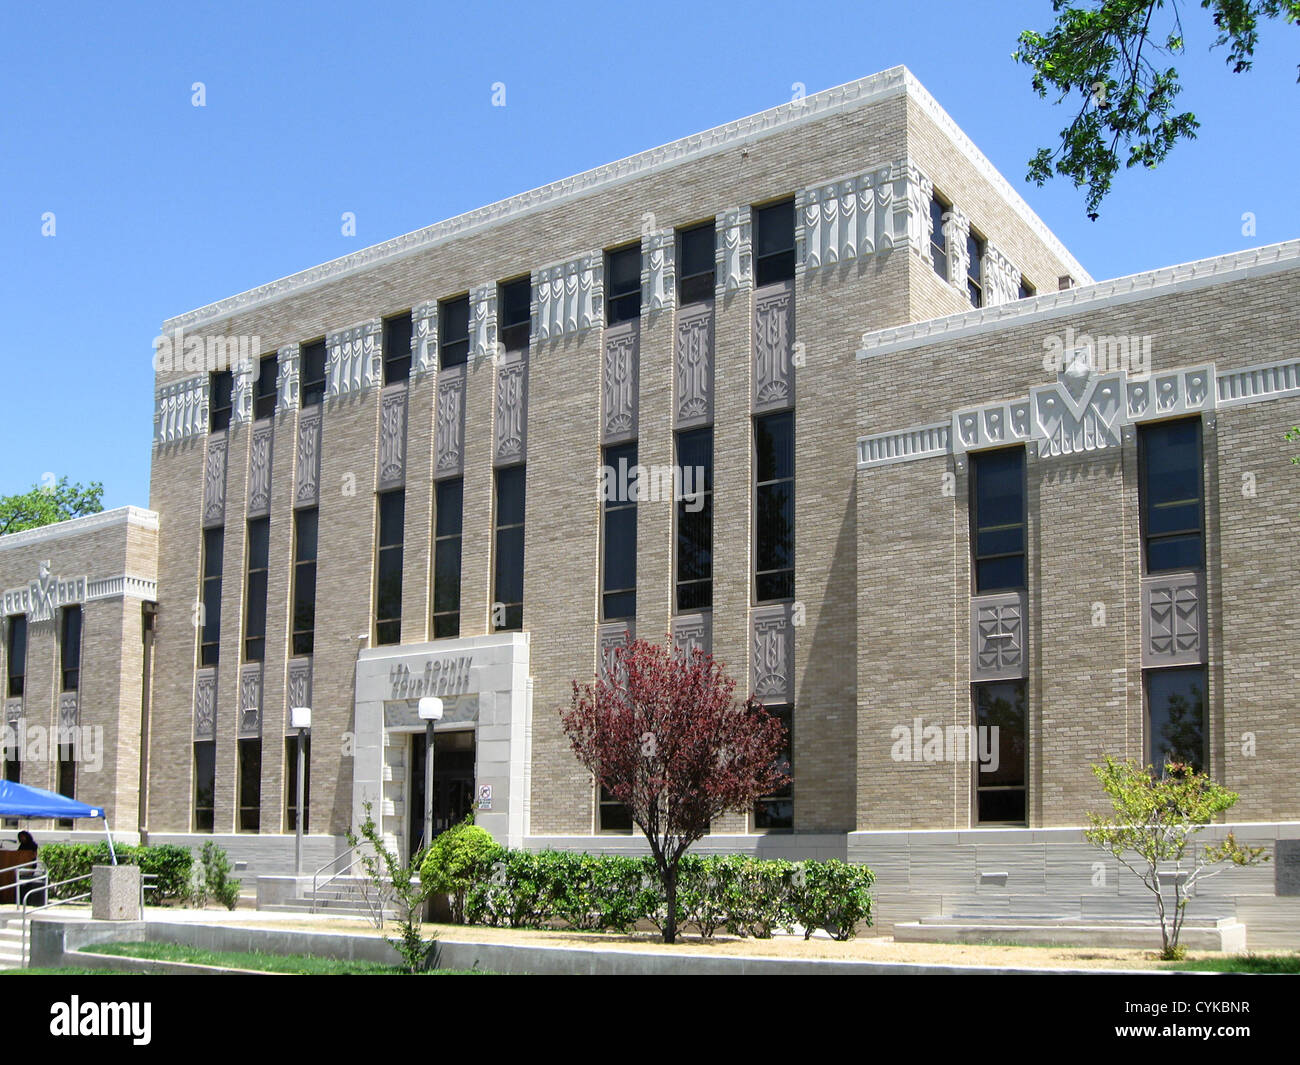 Lea County (New Mexico) Court House, located at 100 N. Main in Lovington, New Mexico. According to a plaque on the - Stock Image